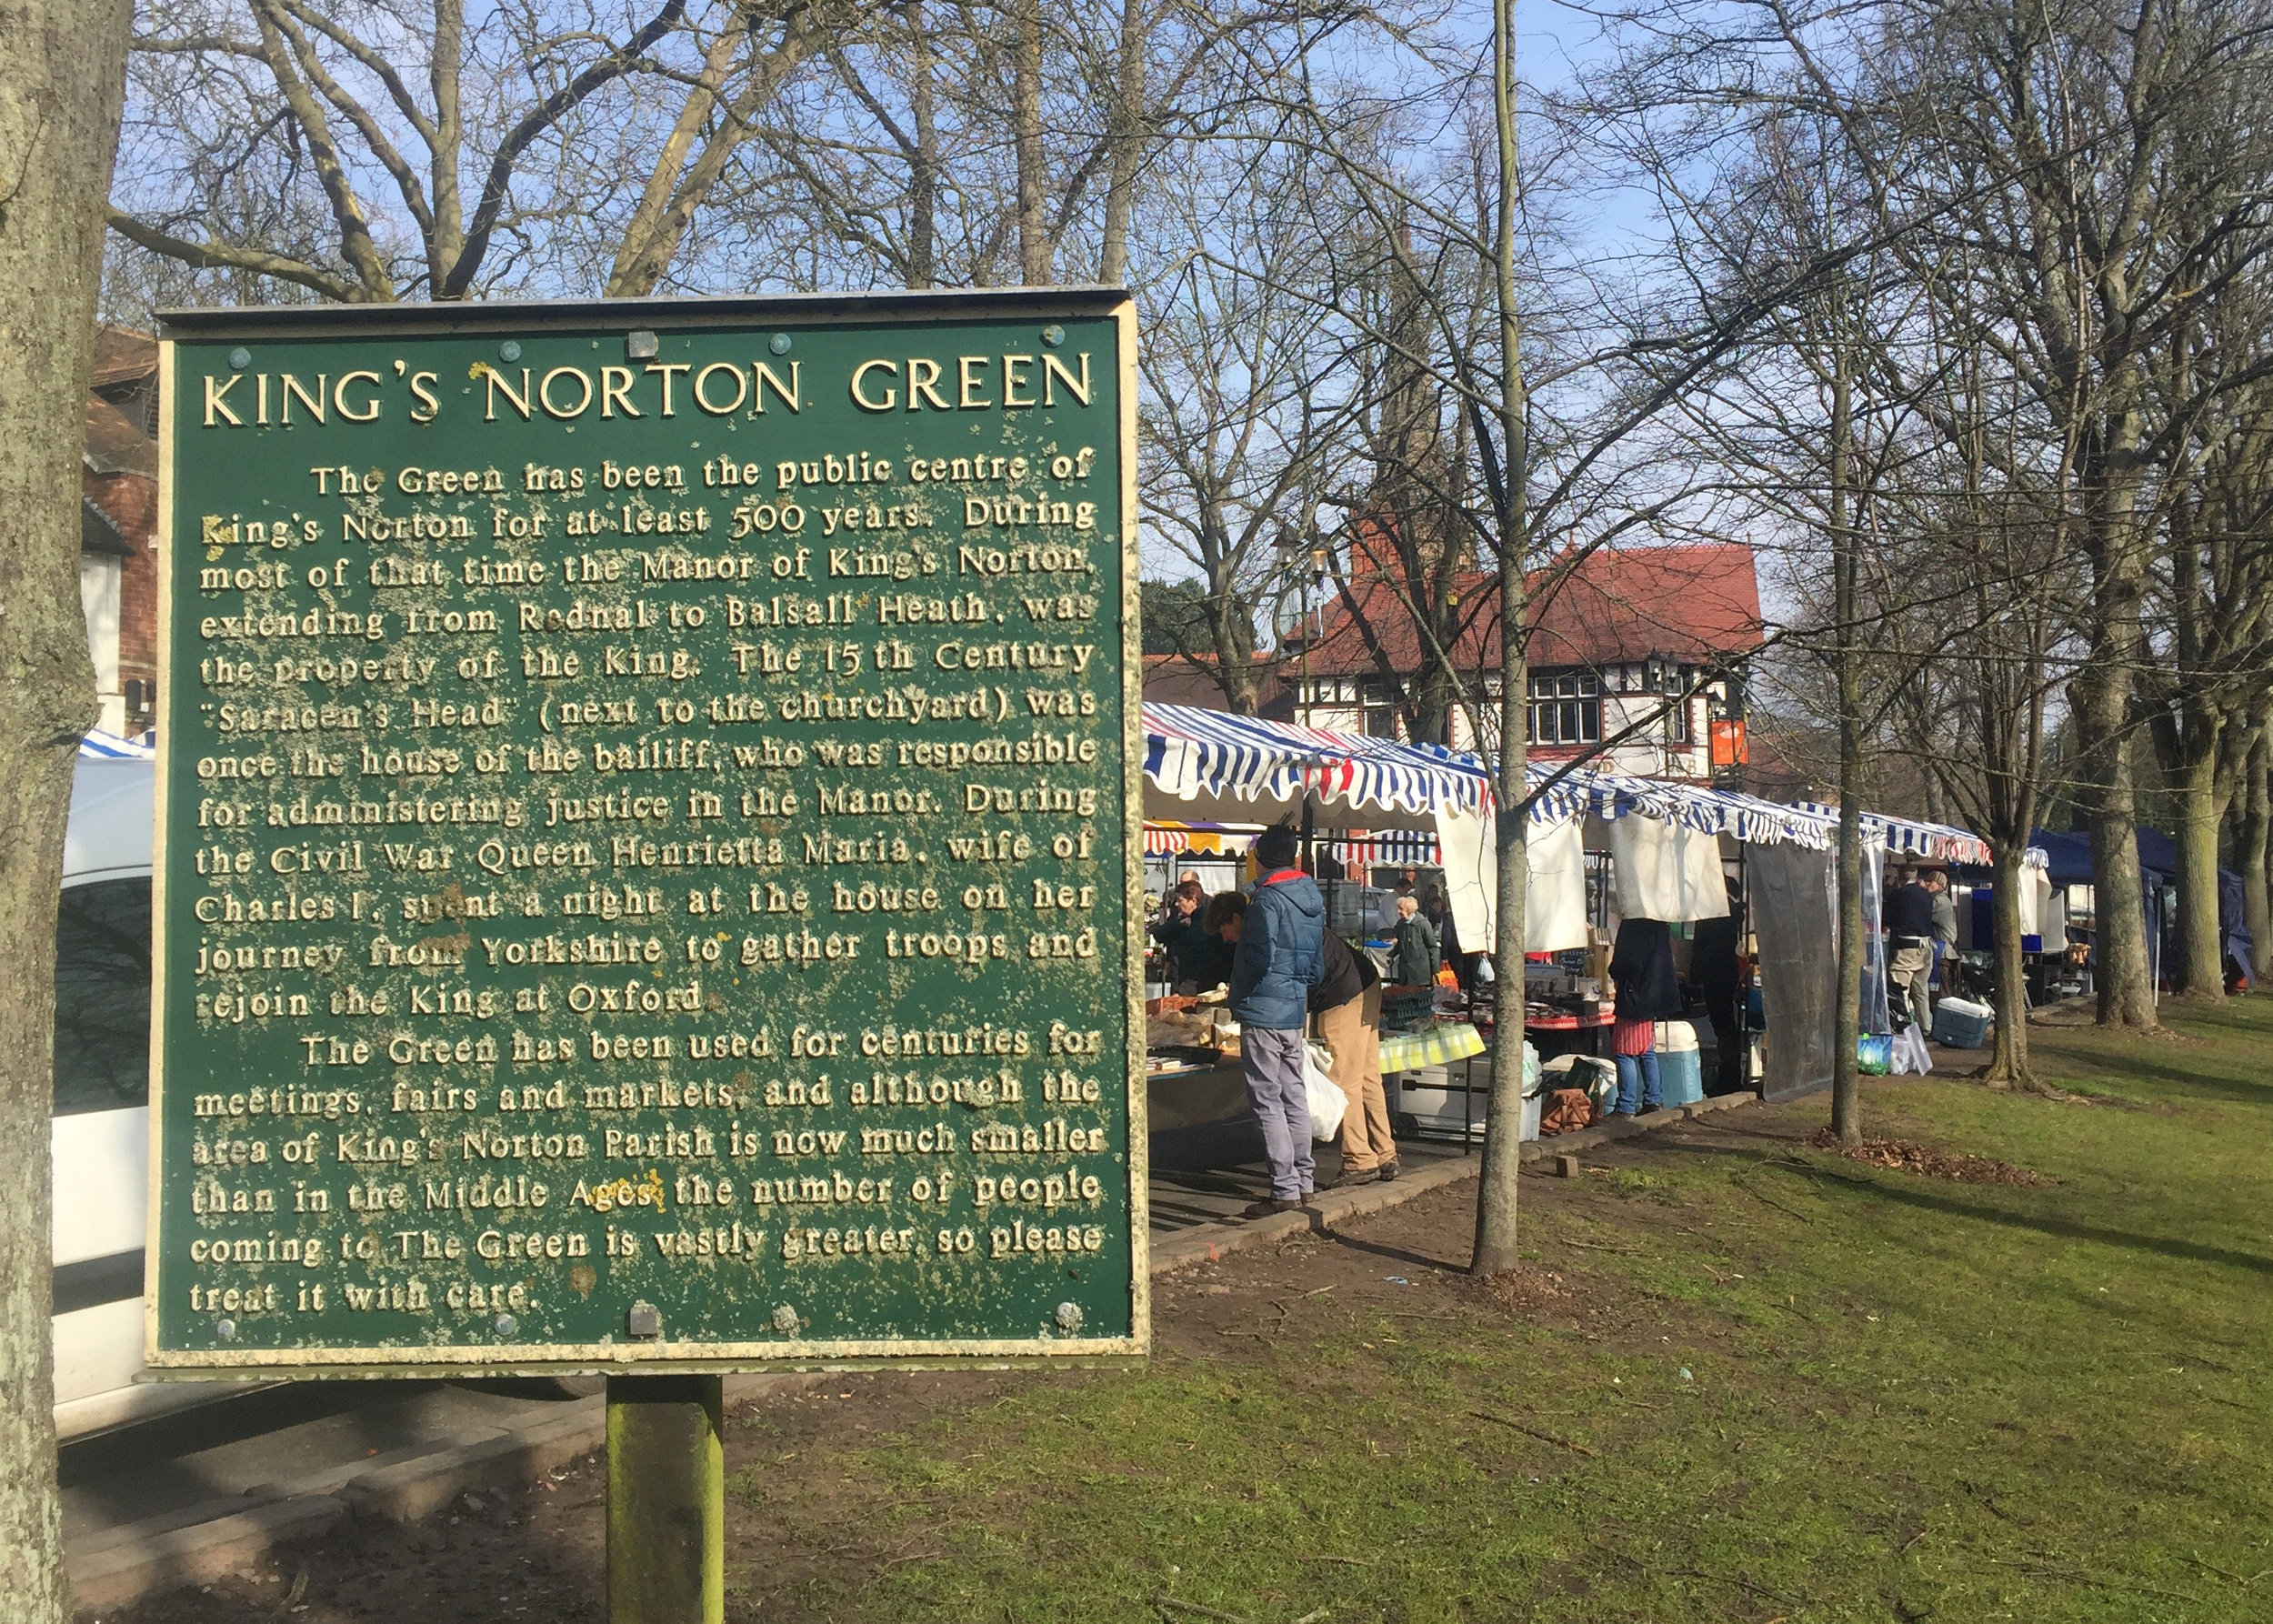 Historic notice at the corner of The Green